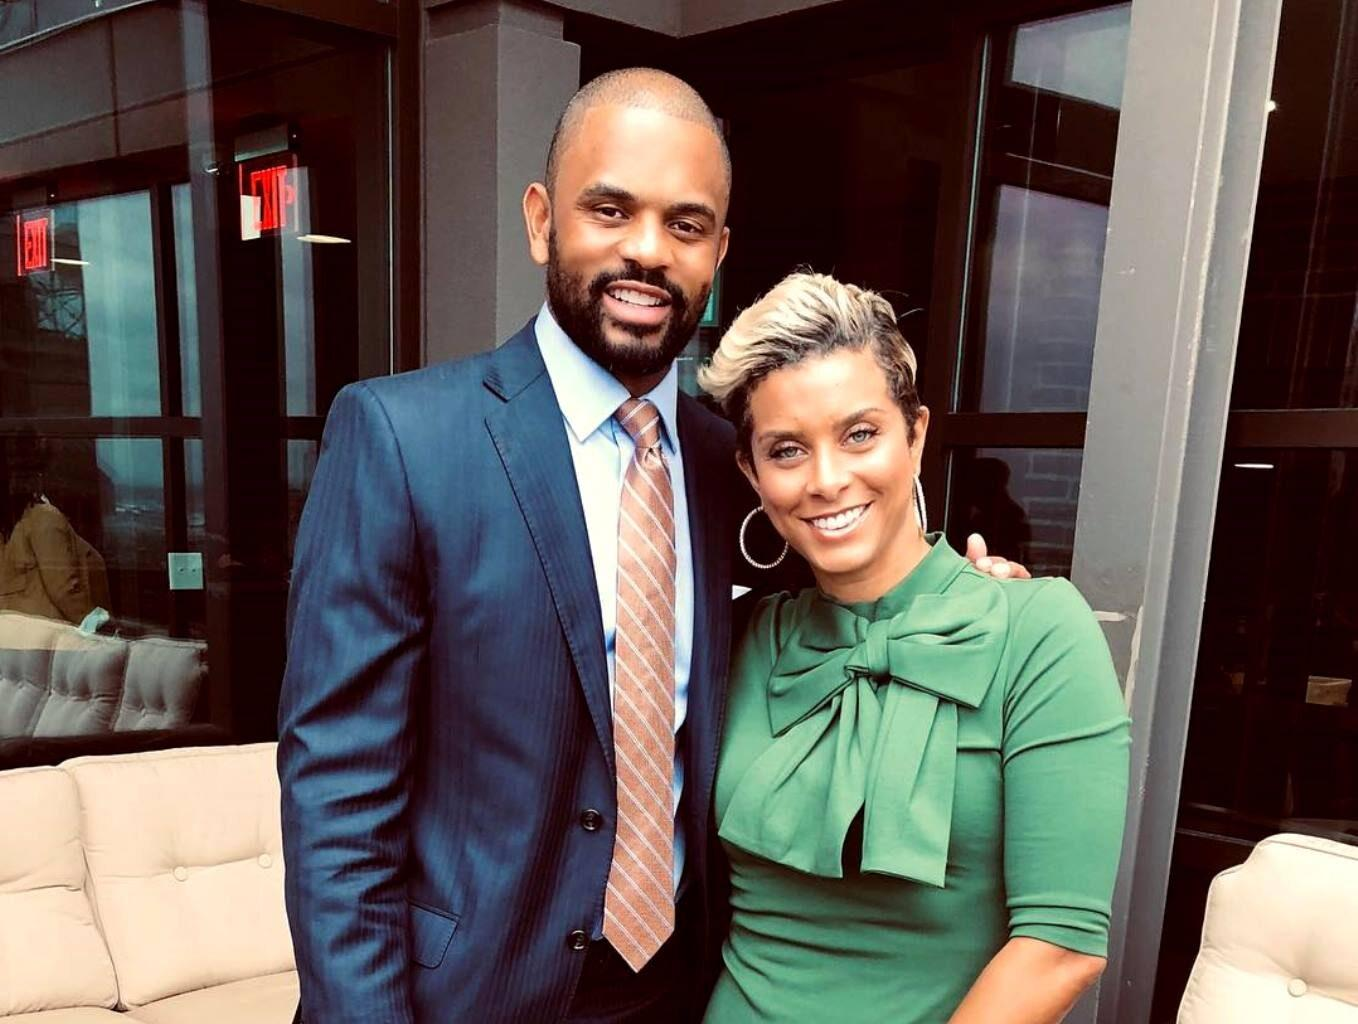 Robyn Dixon's RHOP Co-Stars Freak Out Over Her Engagement To Ex-Husband Juan